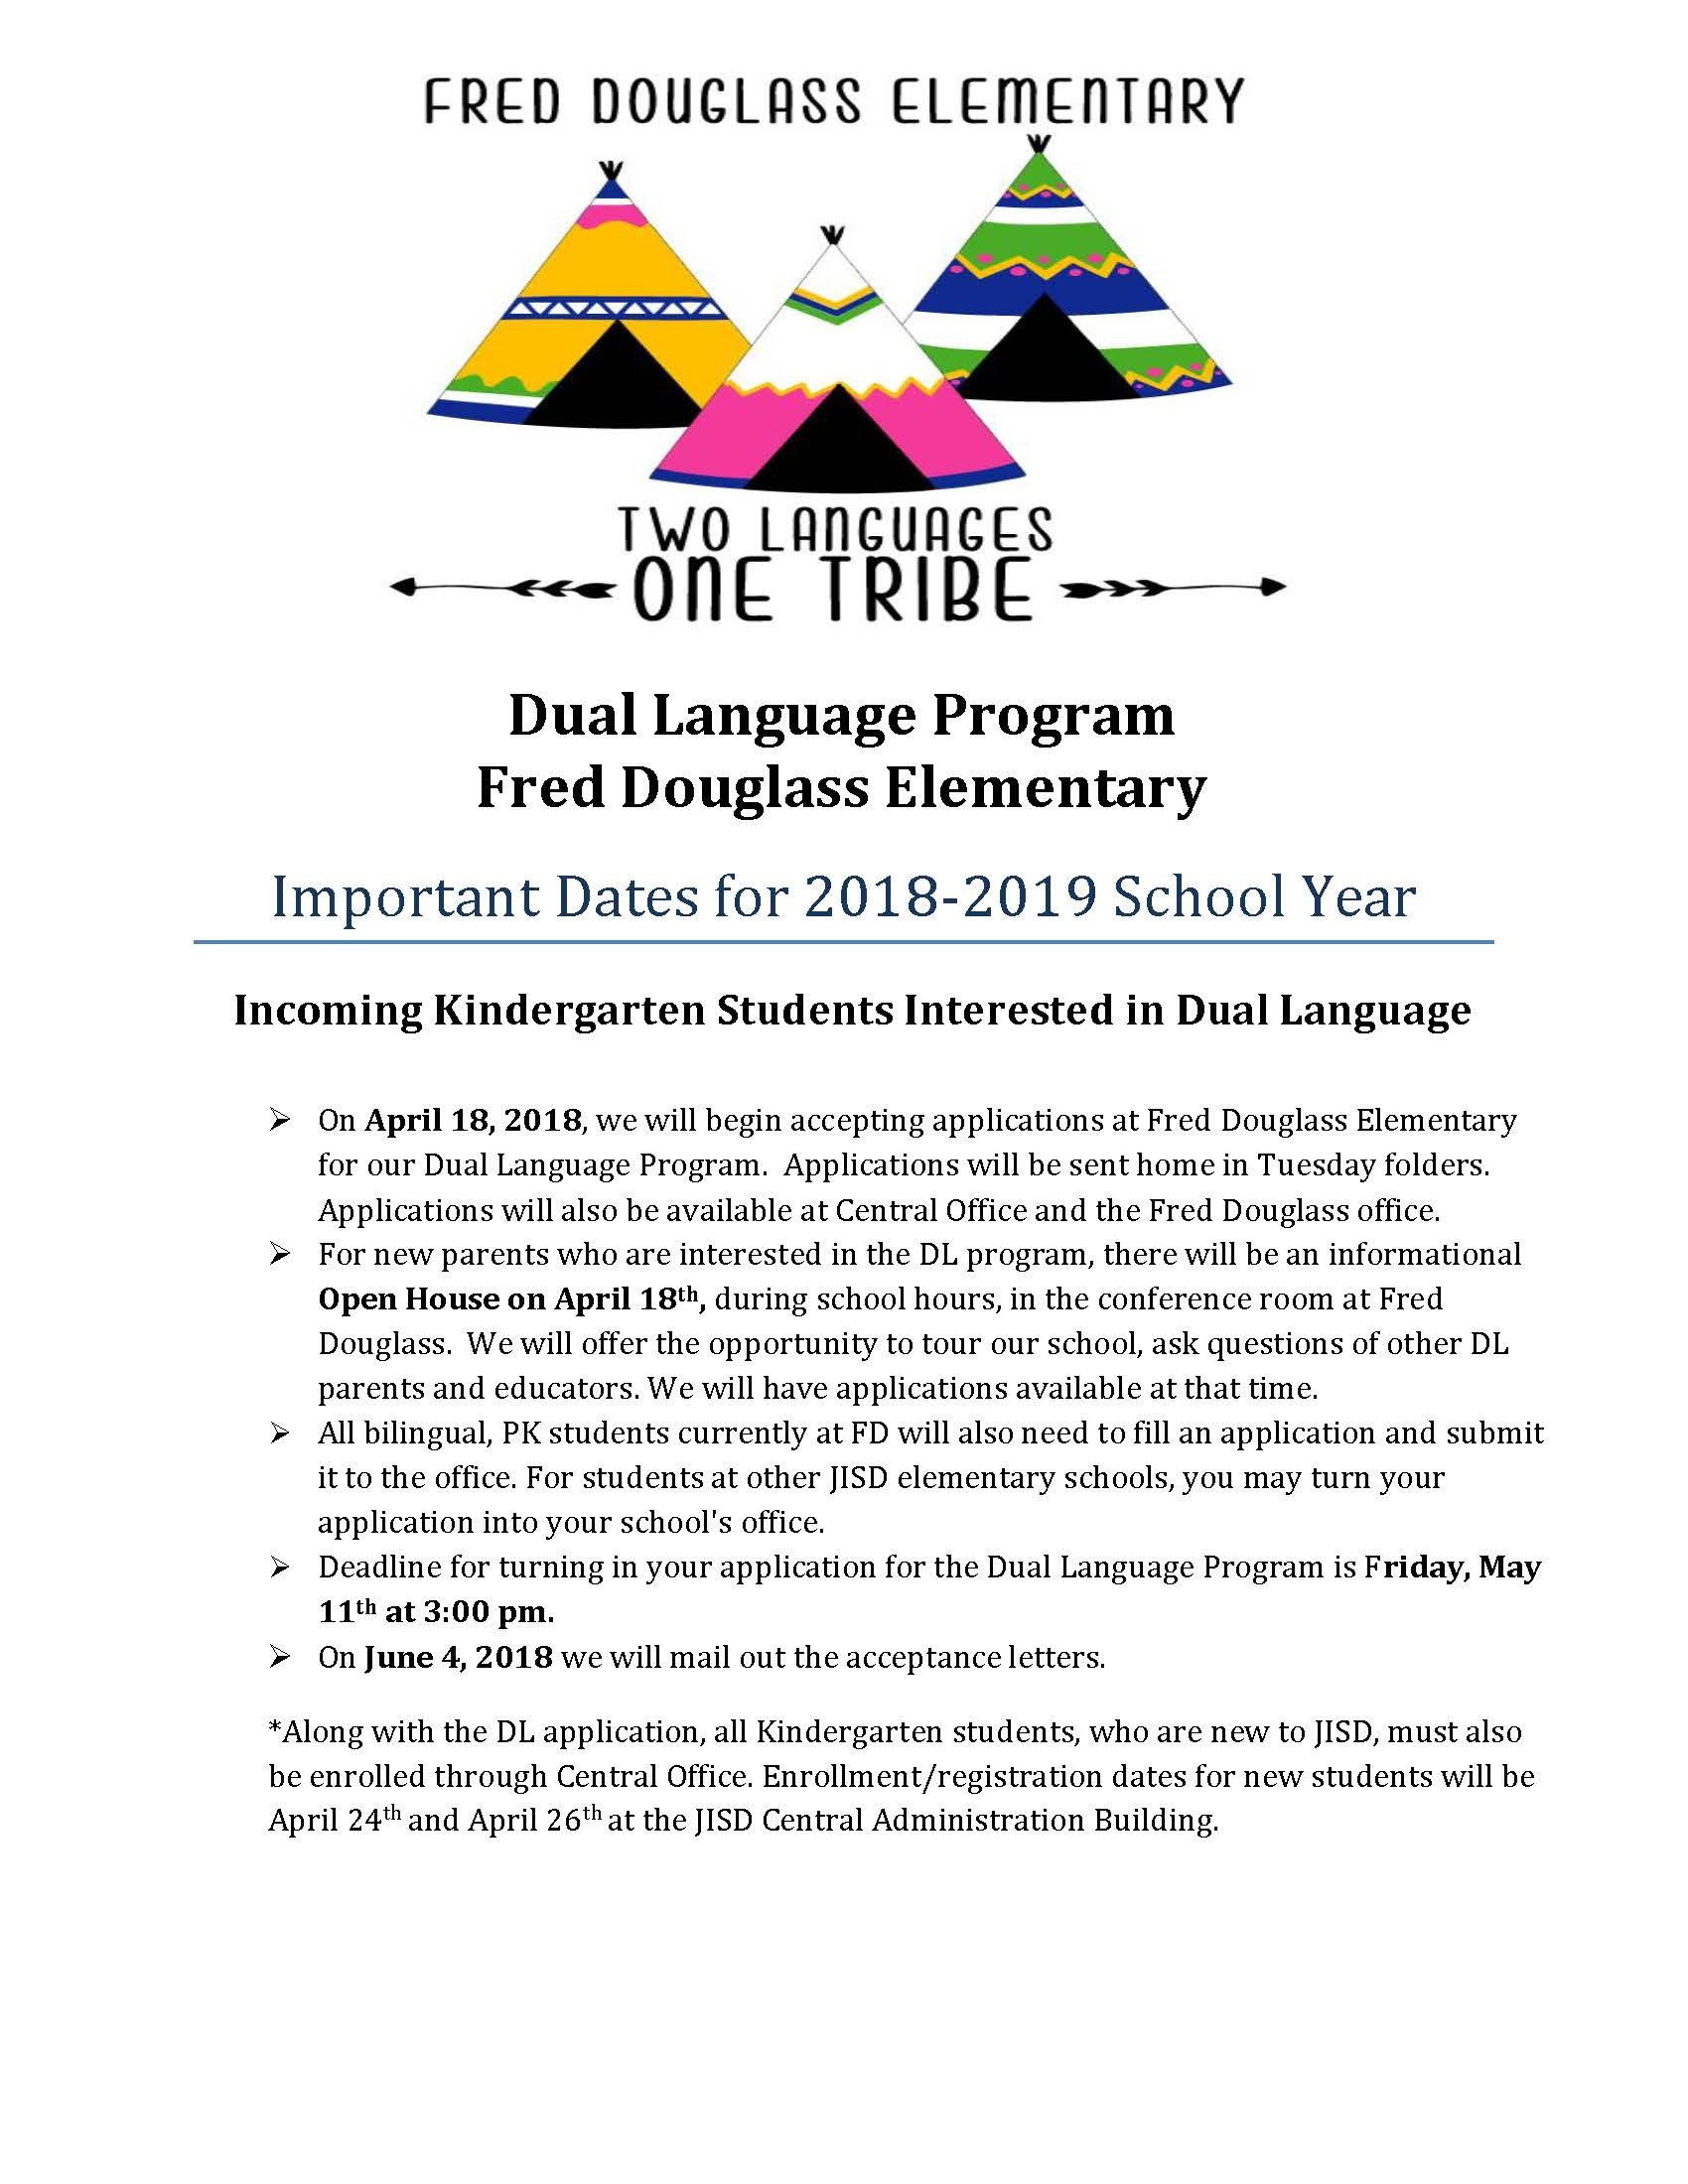 flyer for dual language in english